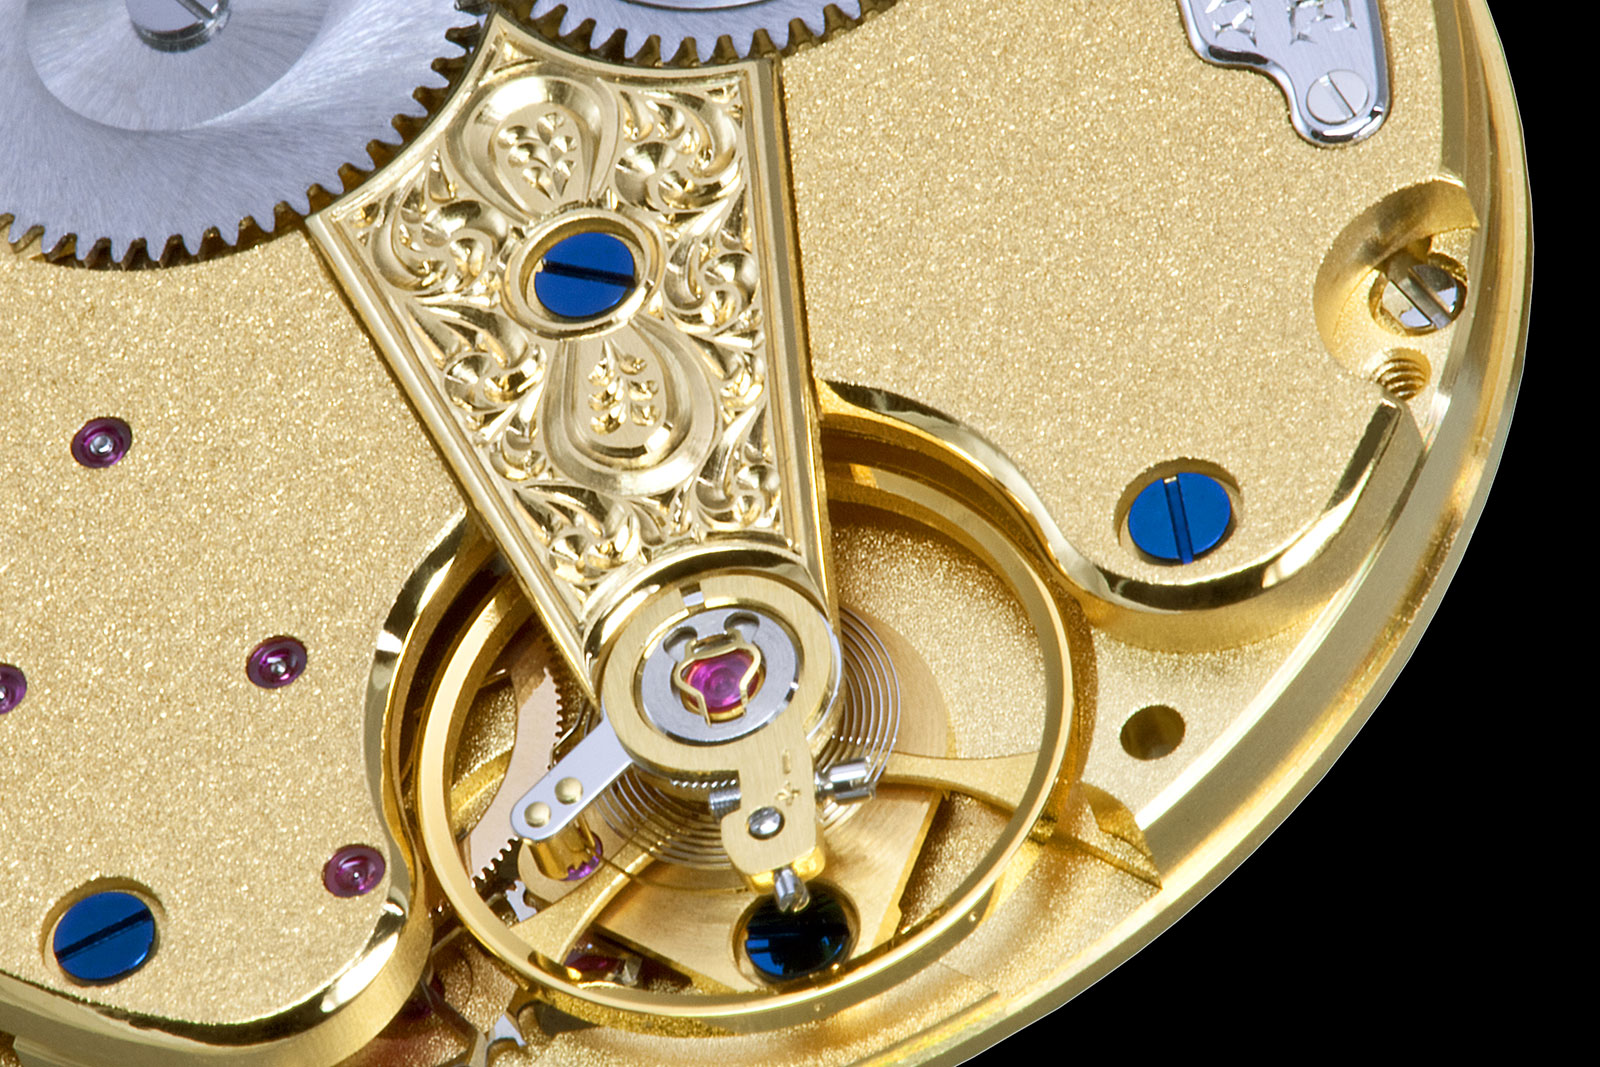 KUDOKE Kaliber 1 watch movement 4